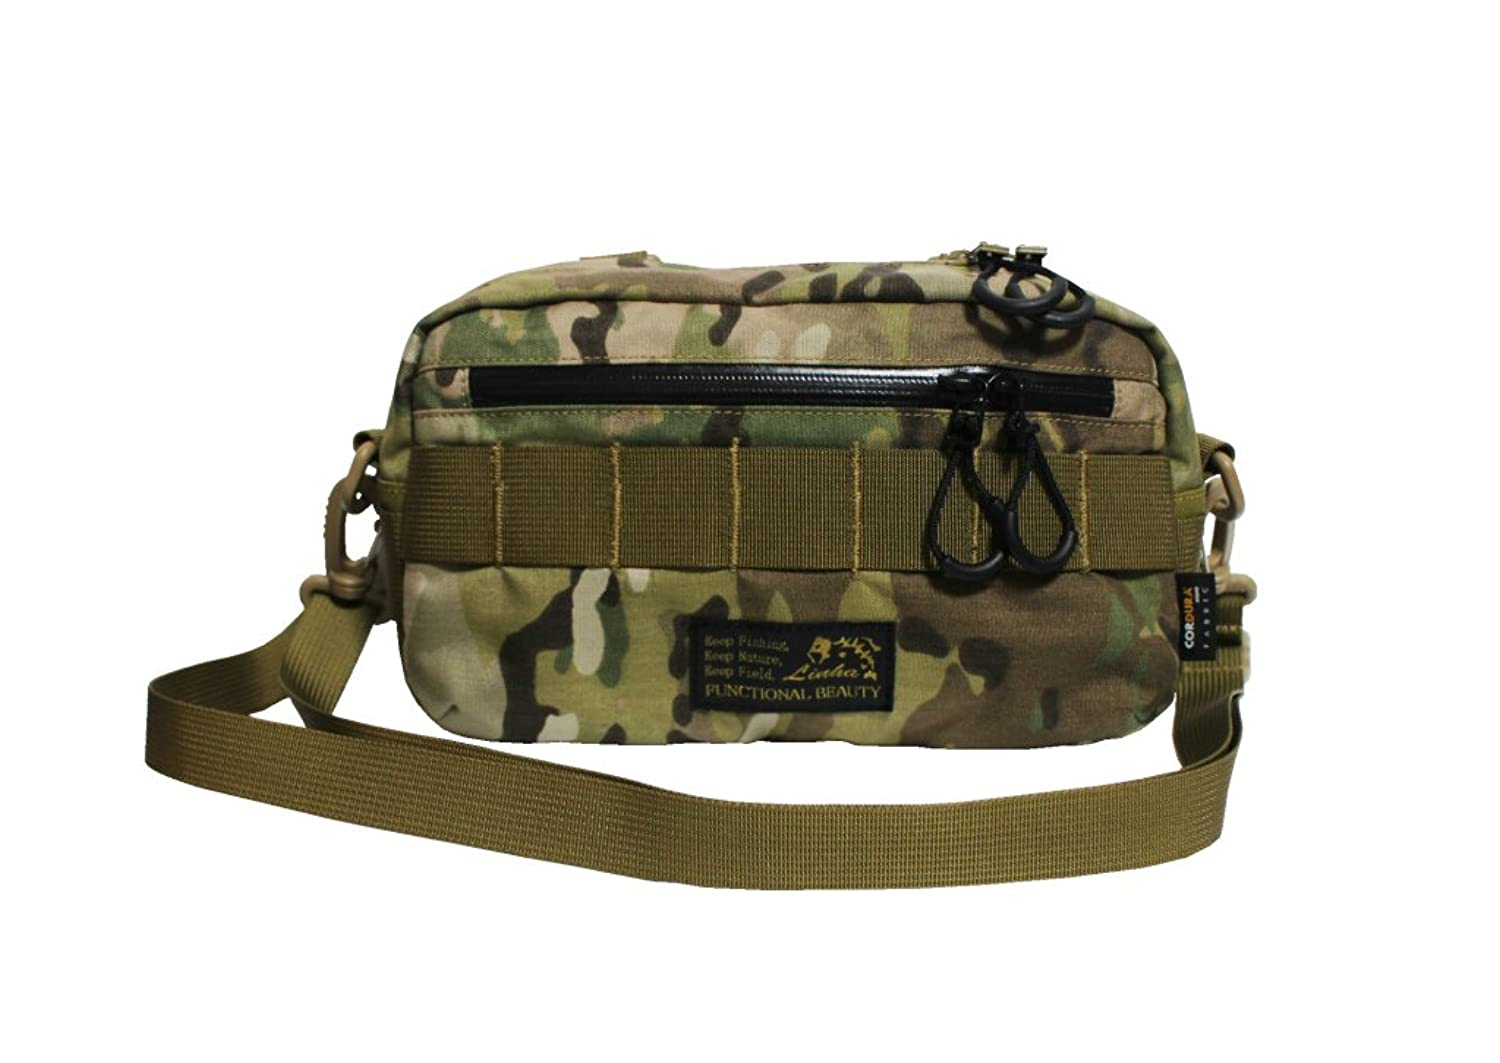 LINHA(リーニア) ATTACHMENT POUCH M TYPEIII MSB-10N CAMO(カモ)